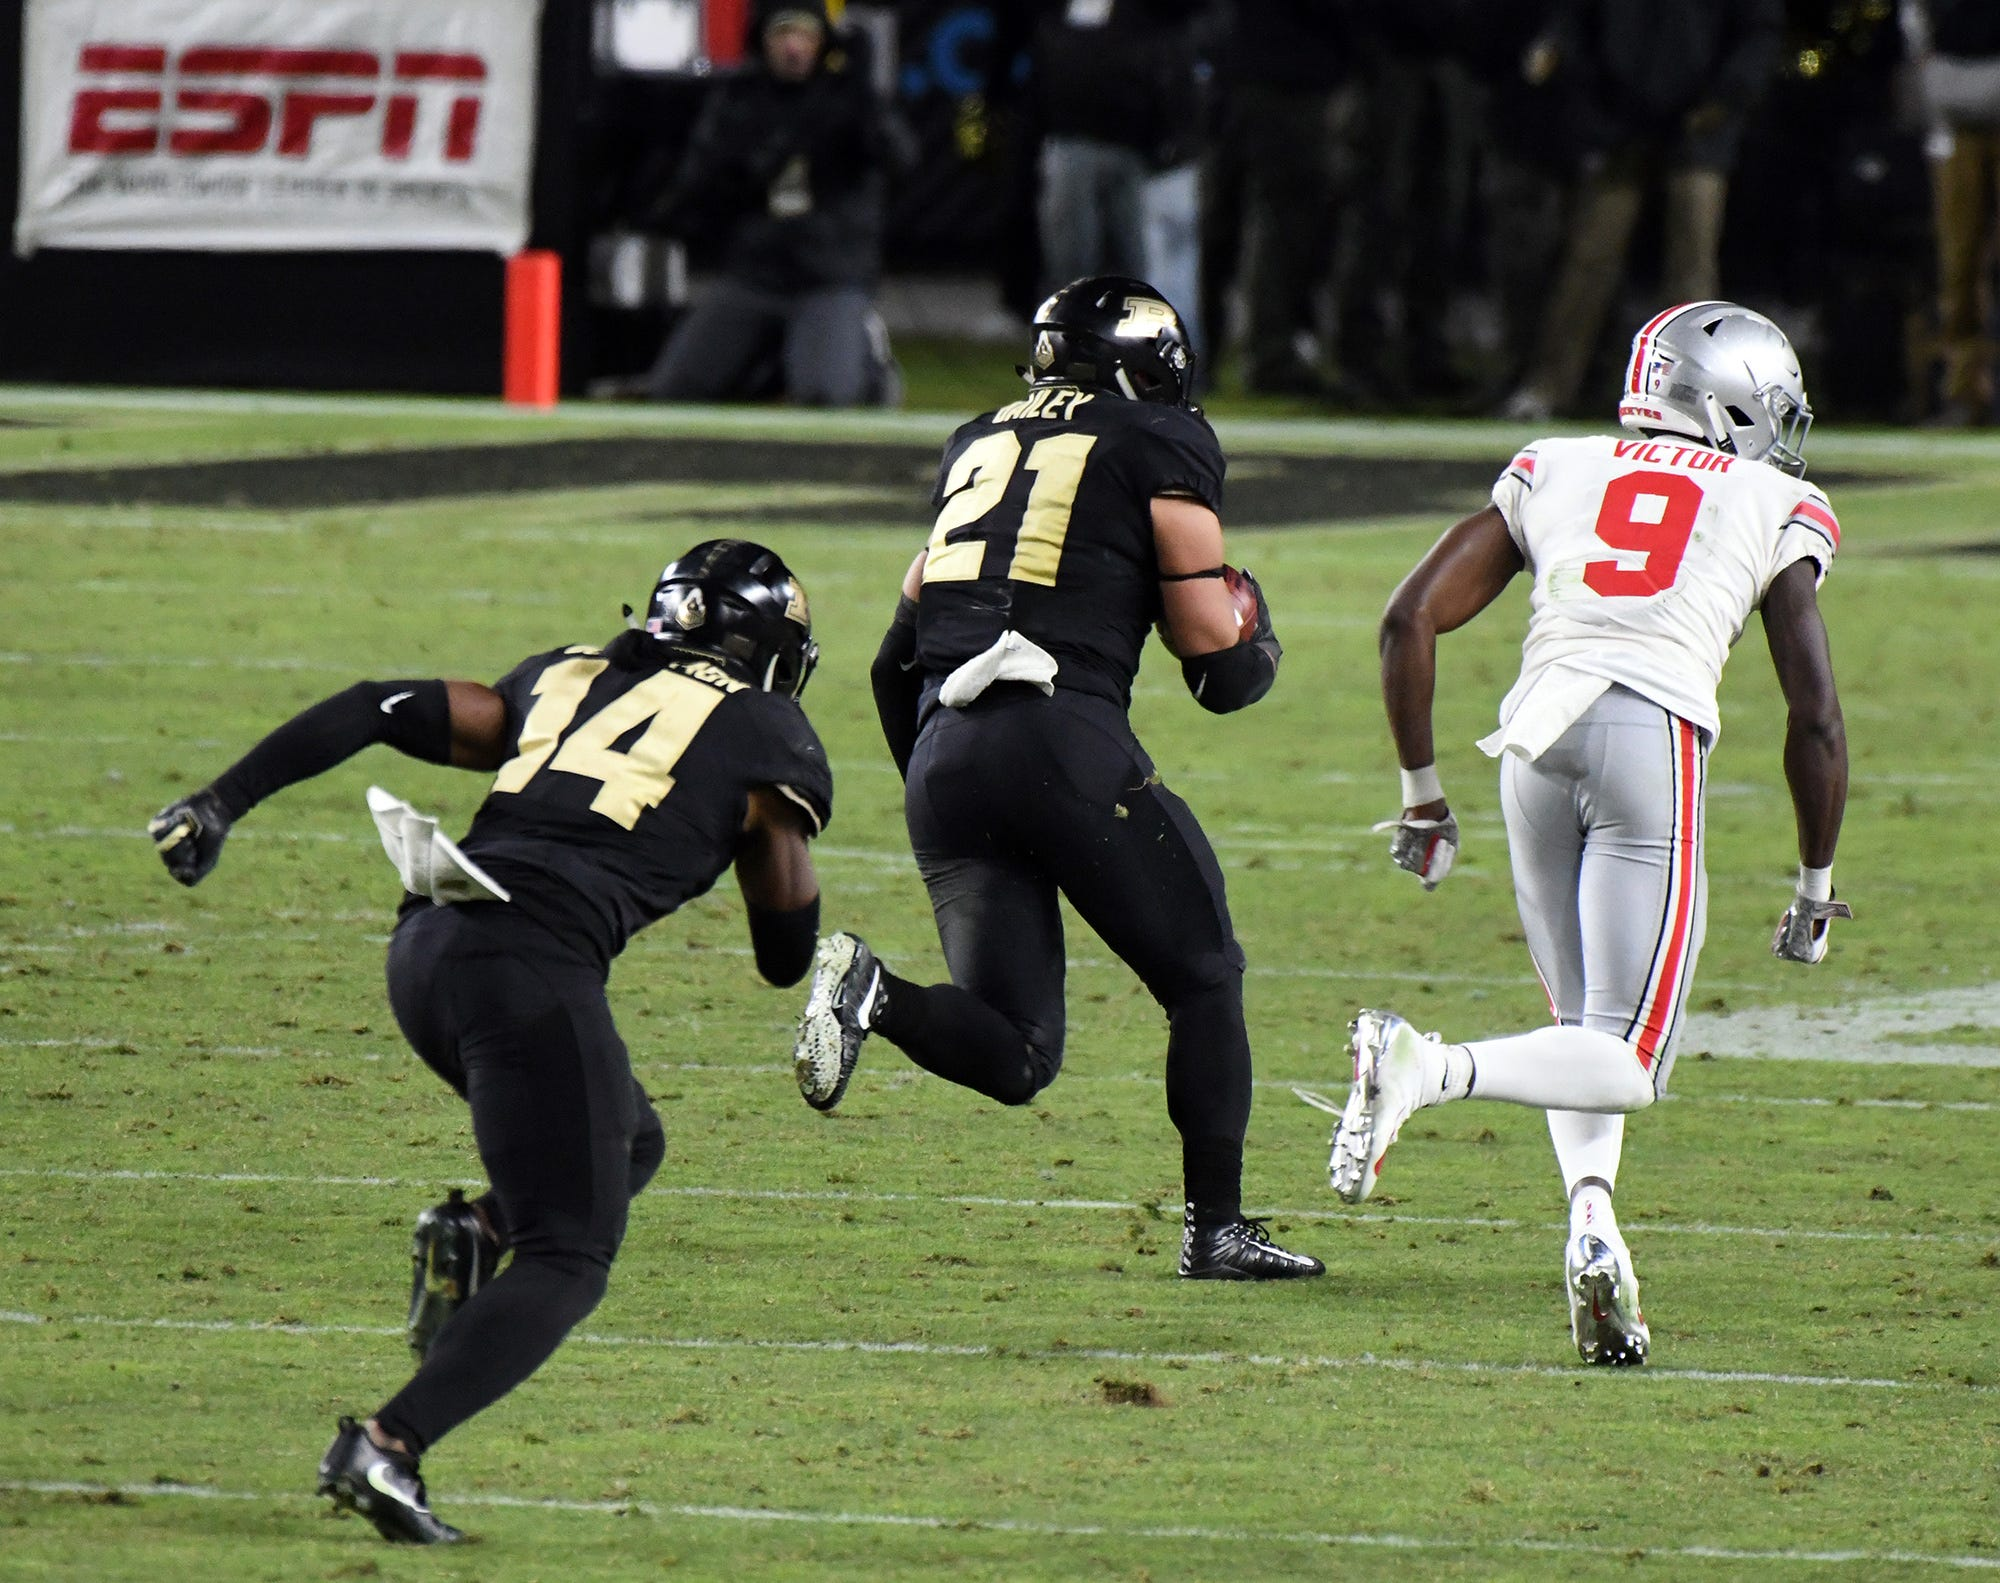 Purdue's Markus Bailey returns an interceptions for a touchdown as Purdue upsets Ohio State in West Lafayette on Saturday October 20, 2018.